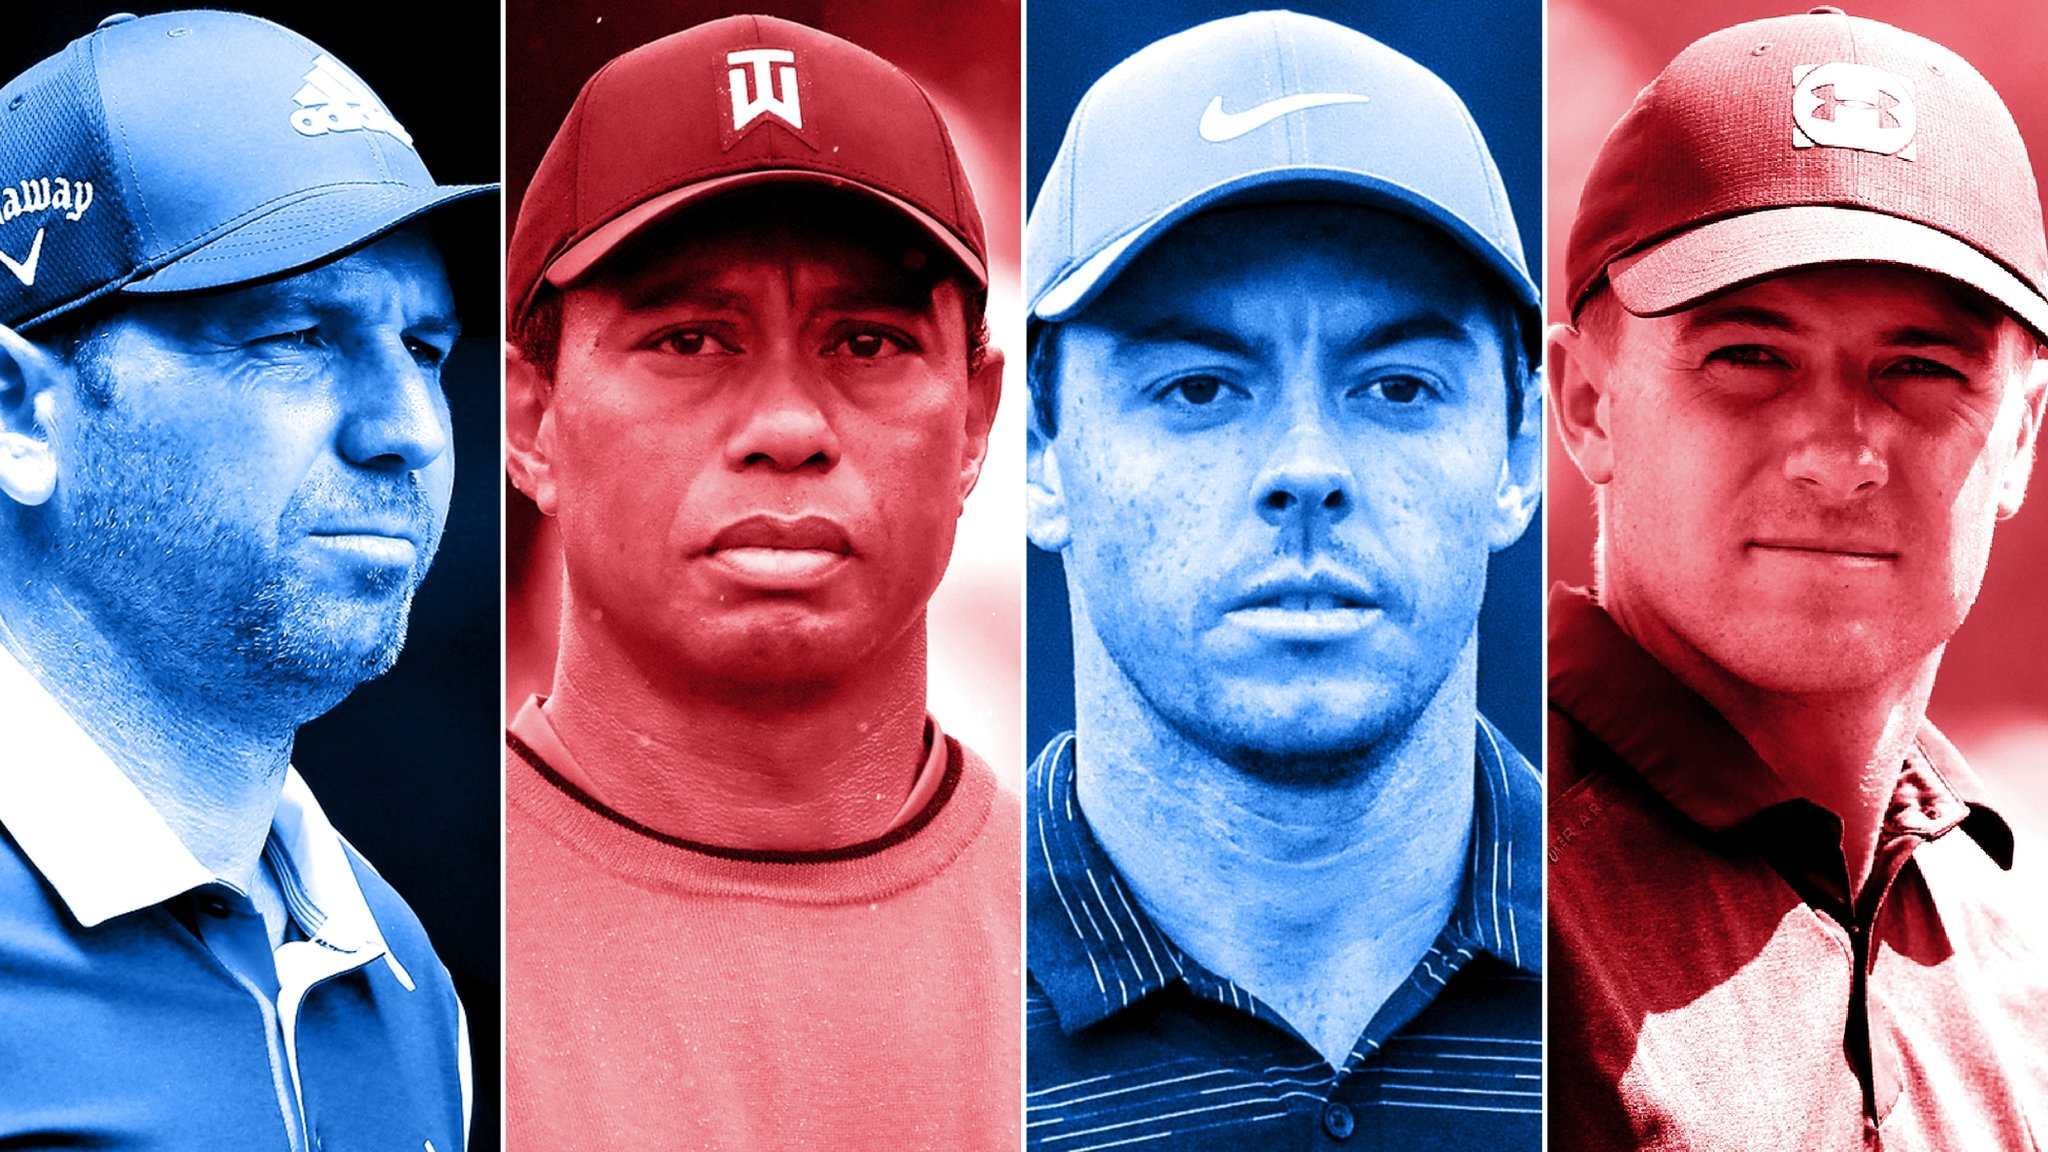 Europe v US - how do the Ryder Cup teams compare?